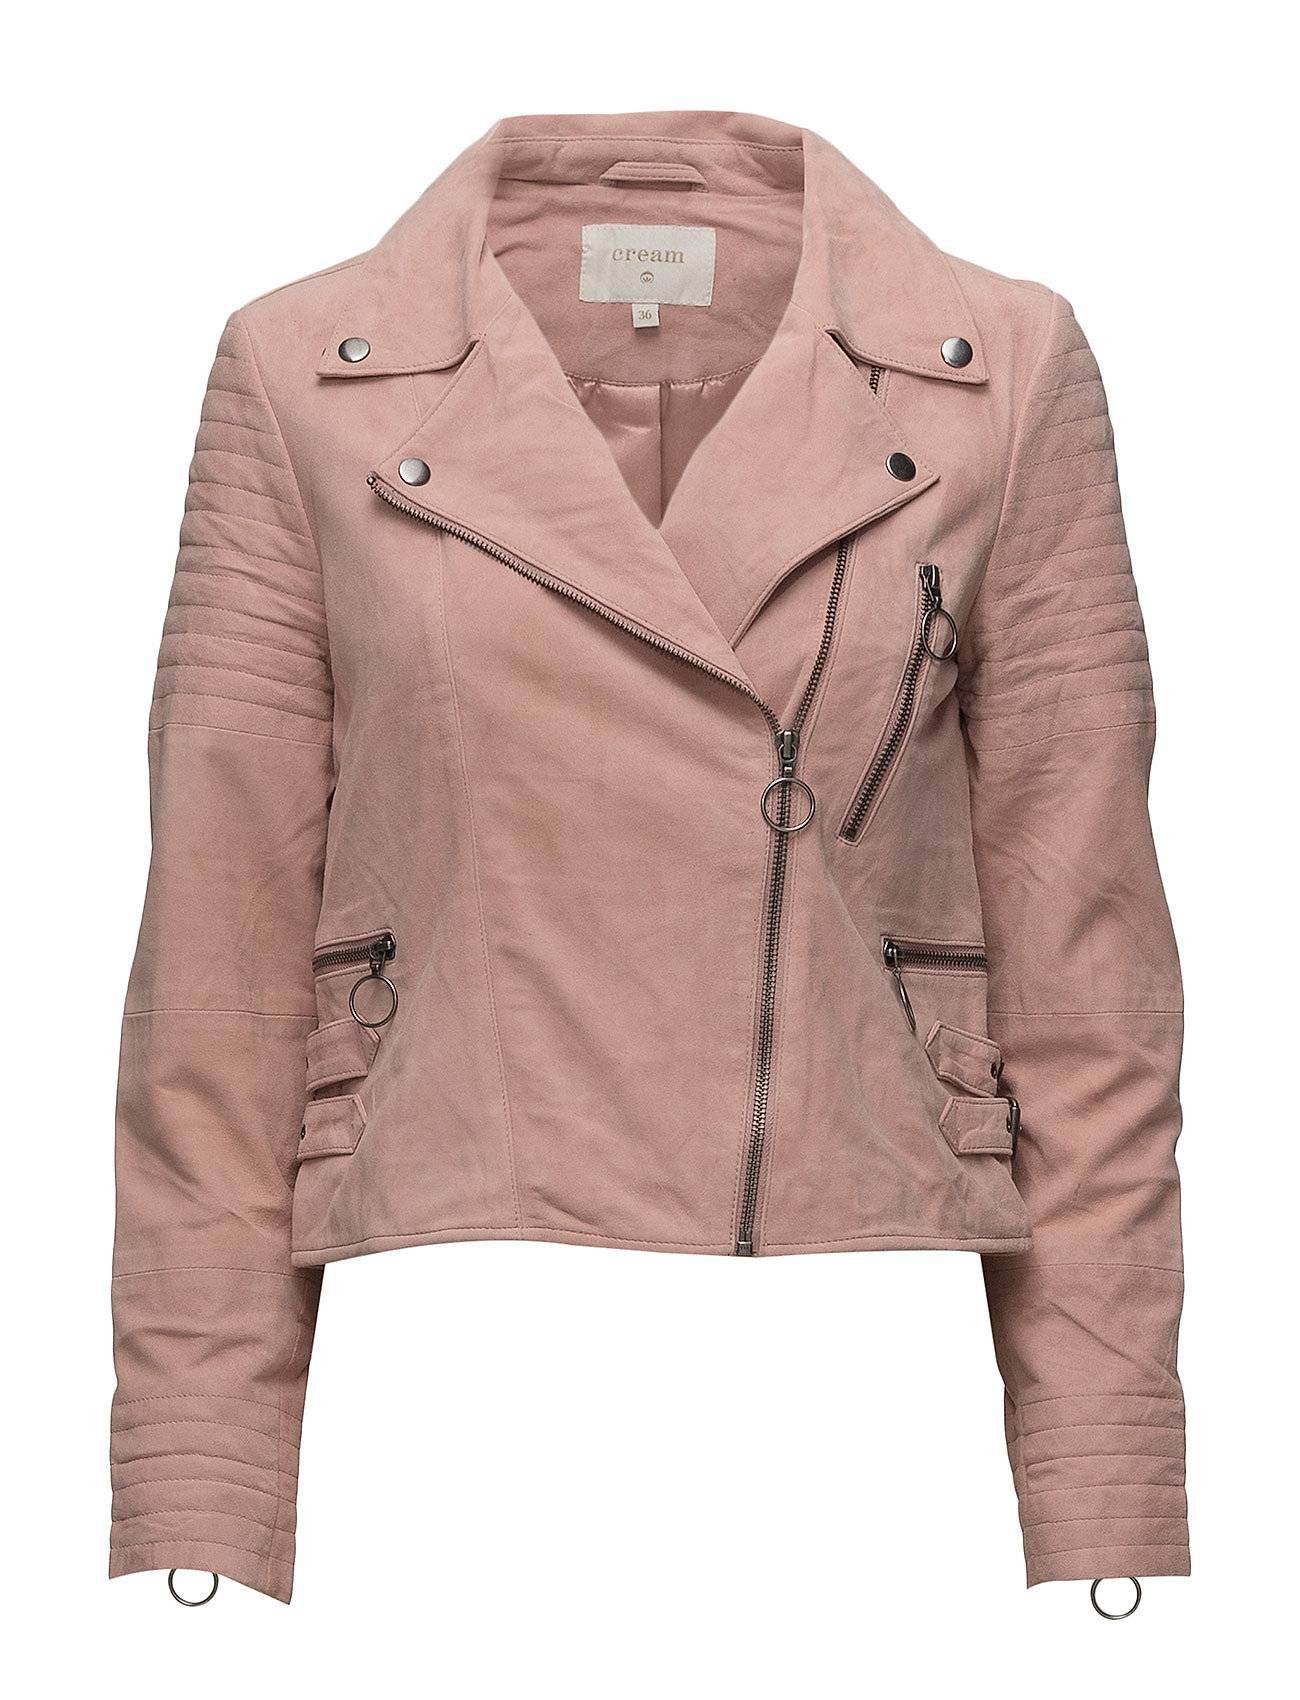 Cream Marion Suede Bikerjacket